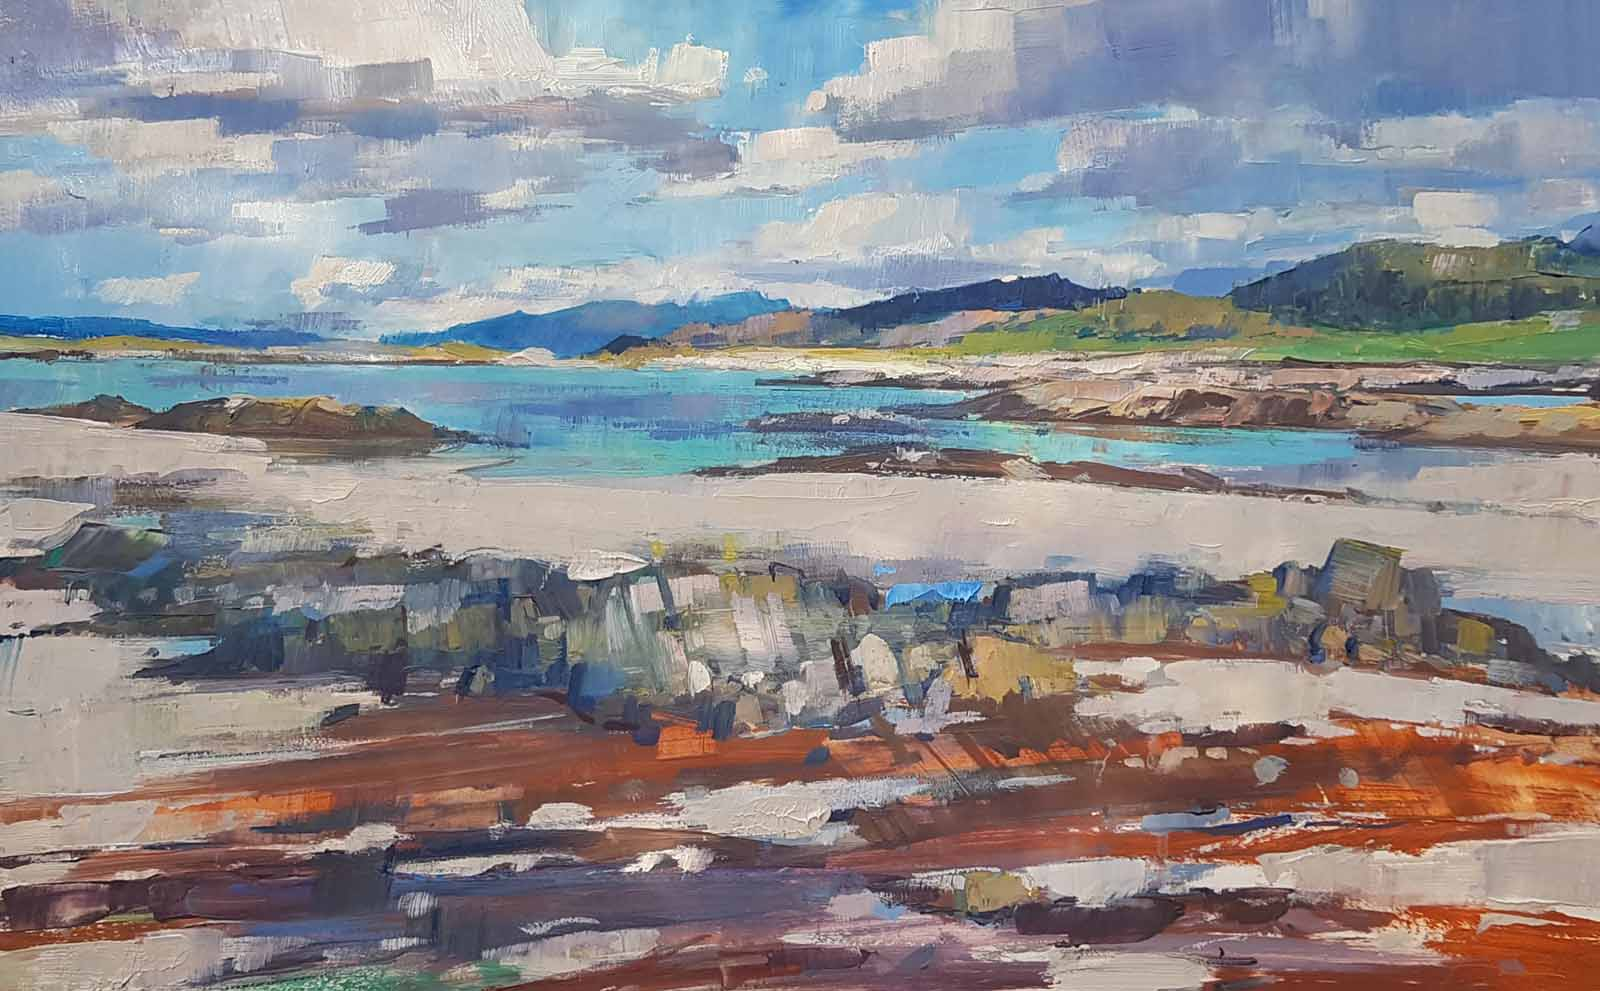 Summer Afternoon, Morar, Arisaig